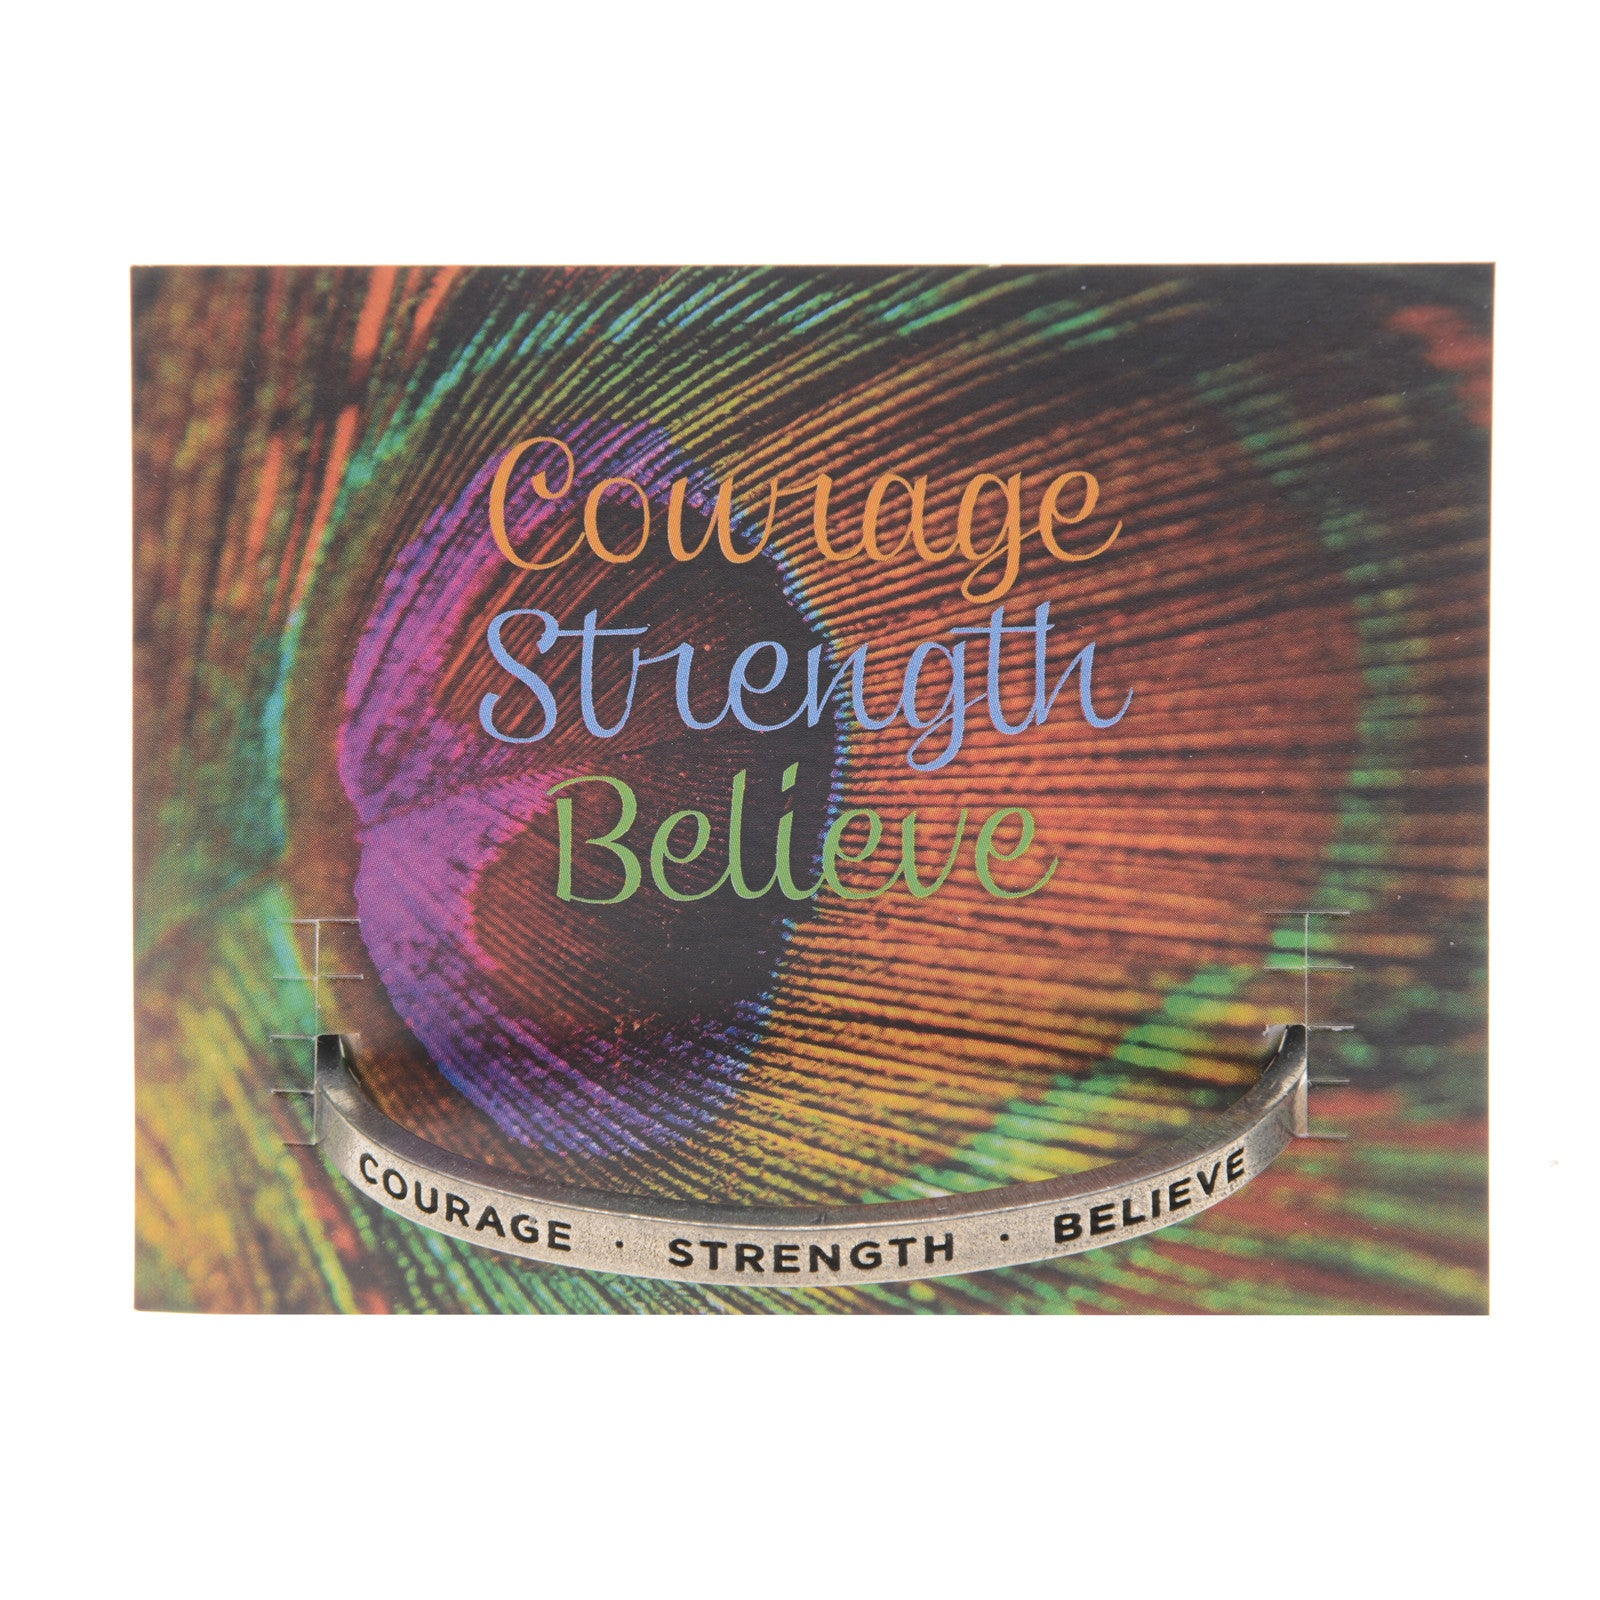 Courage-Strength-Believe Quotable Cuff Bracelet - Whitney Howard Designs